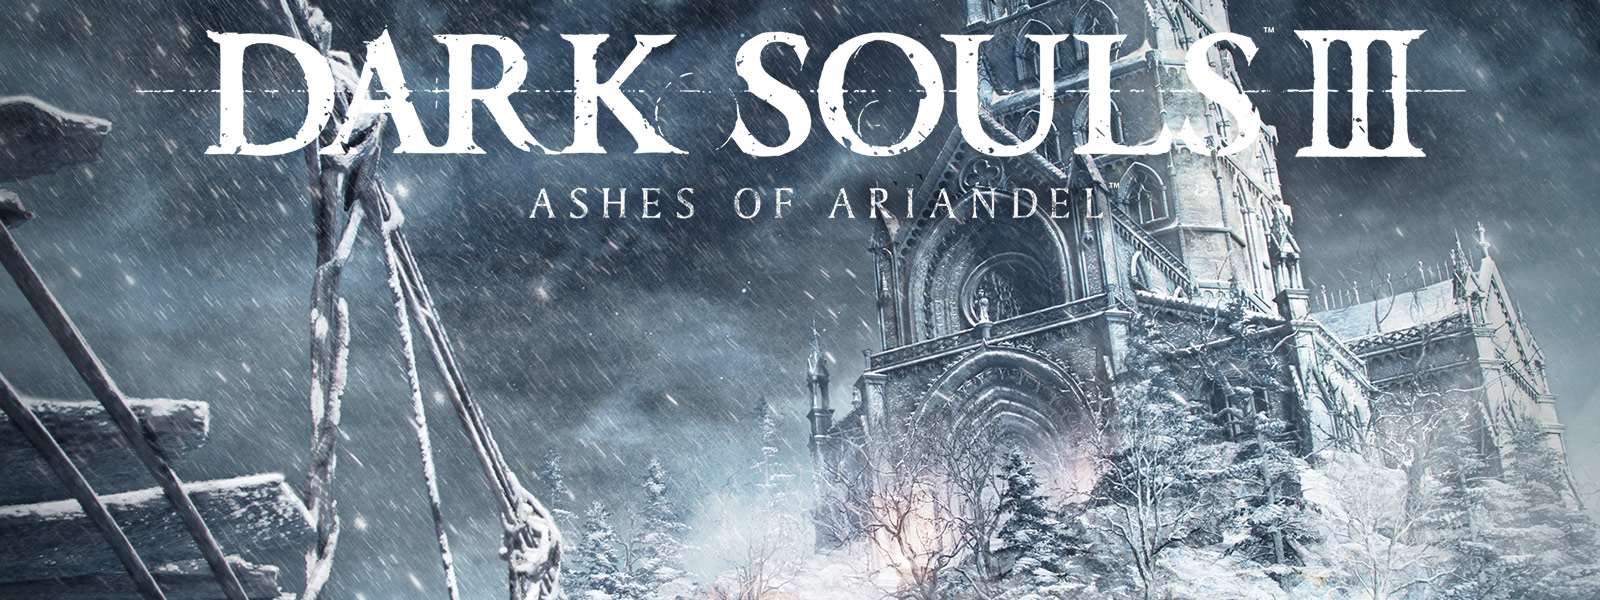 Dark Souls 3 The Ashes of Ariendel csomag